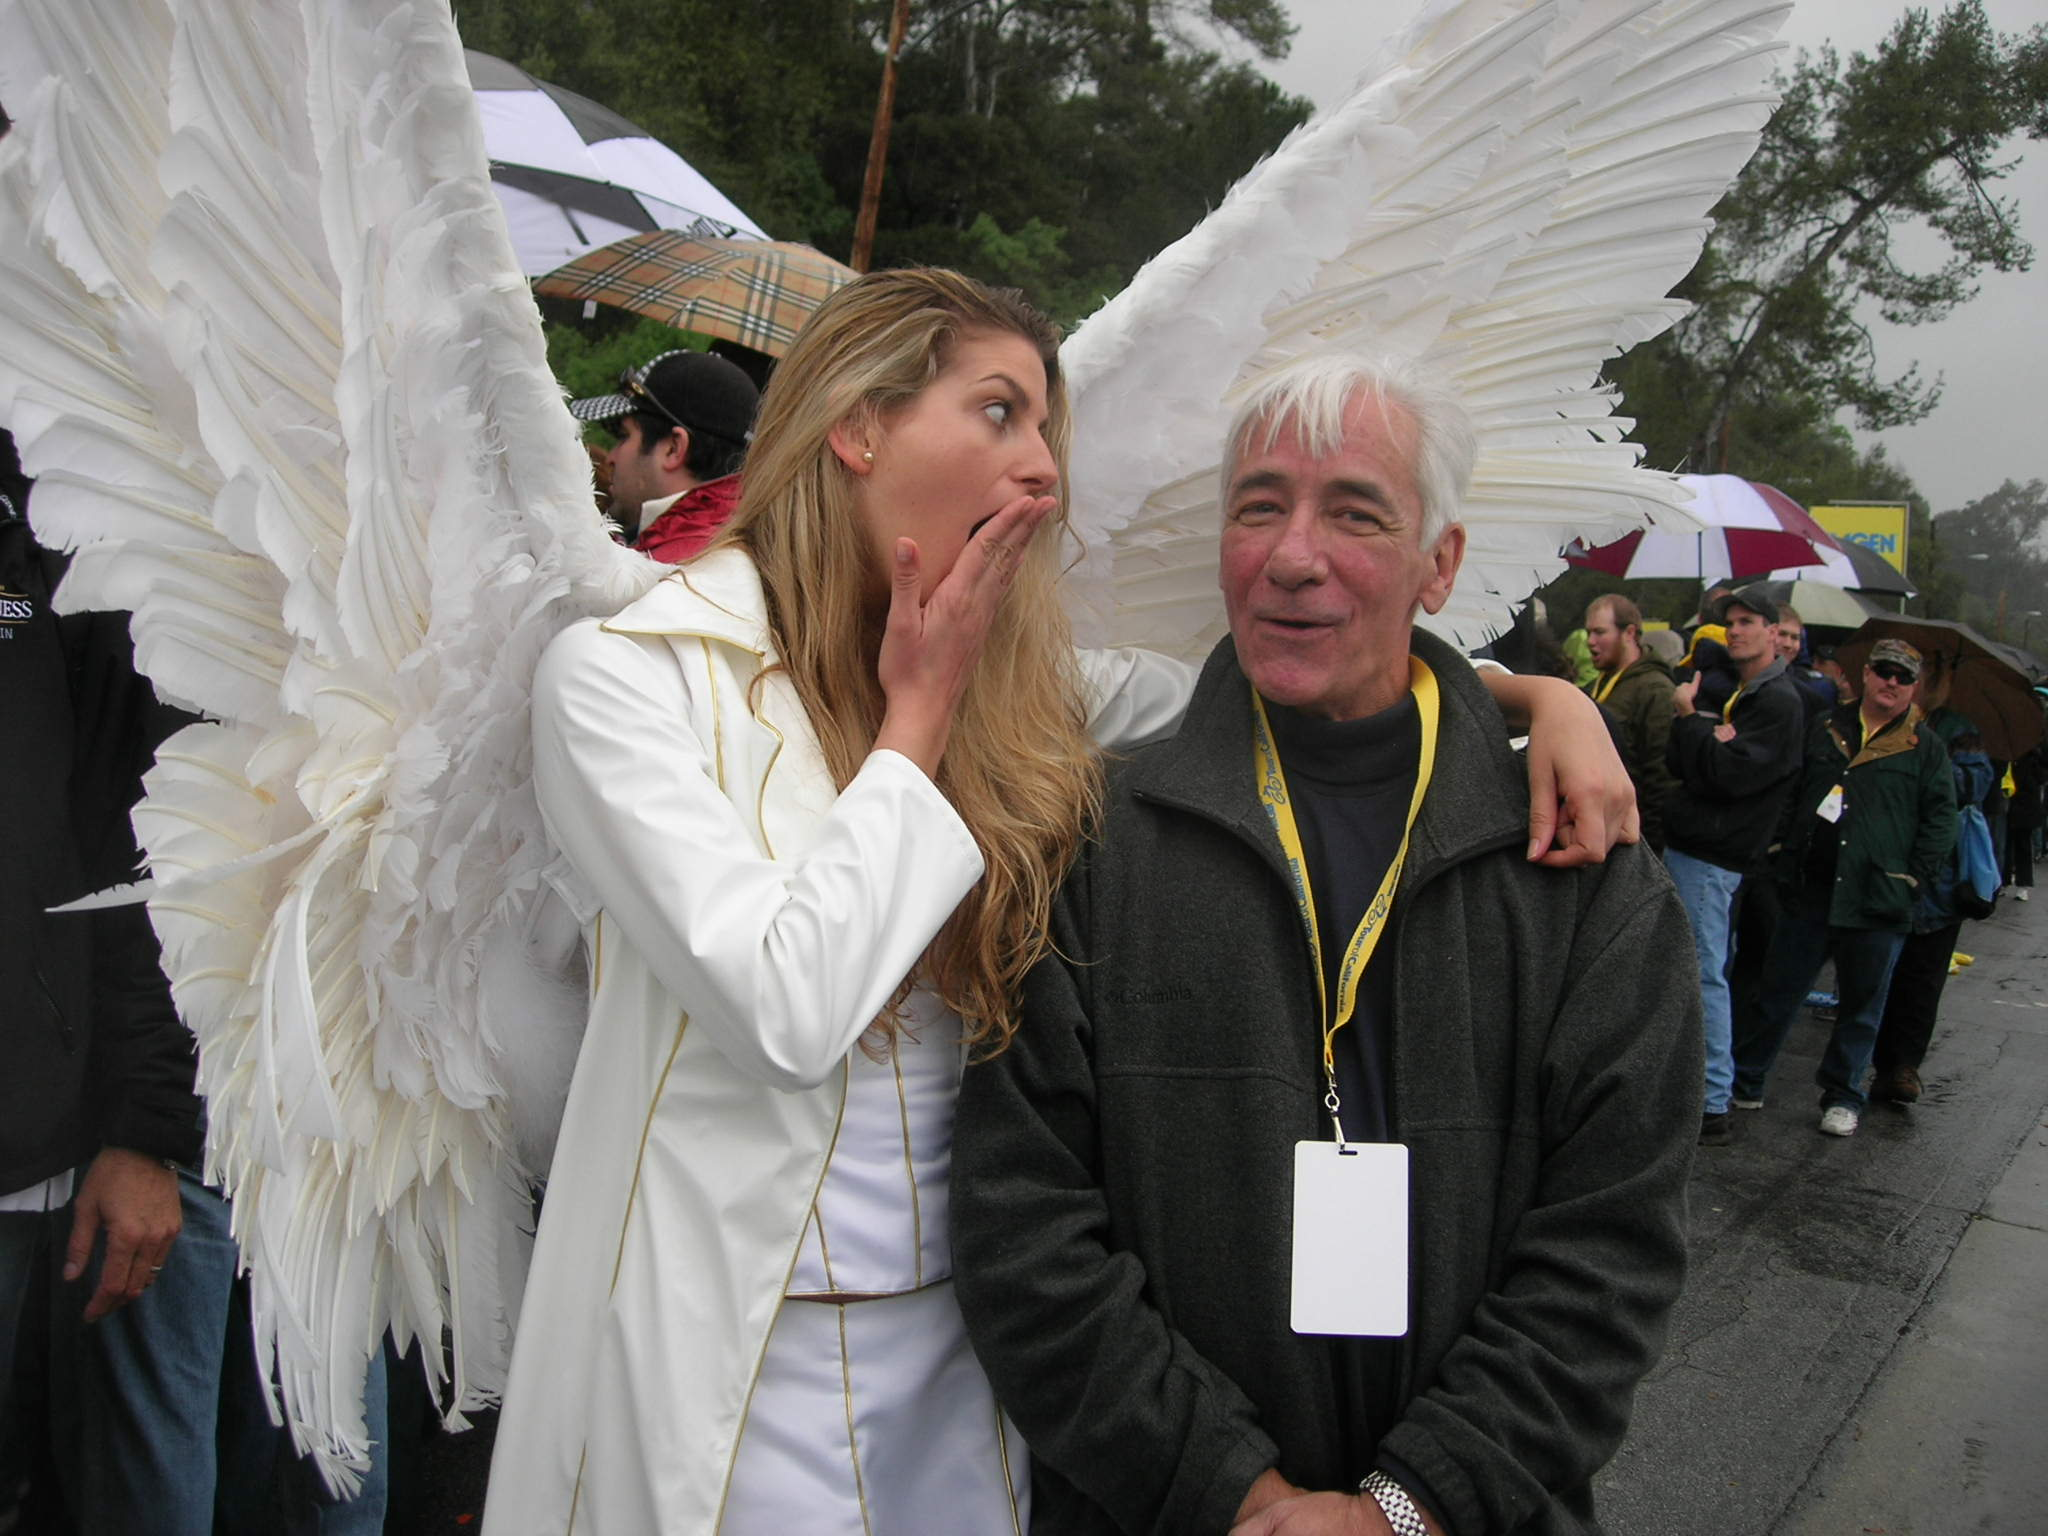 Dennis with Angel